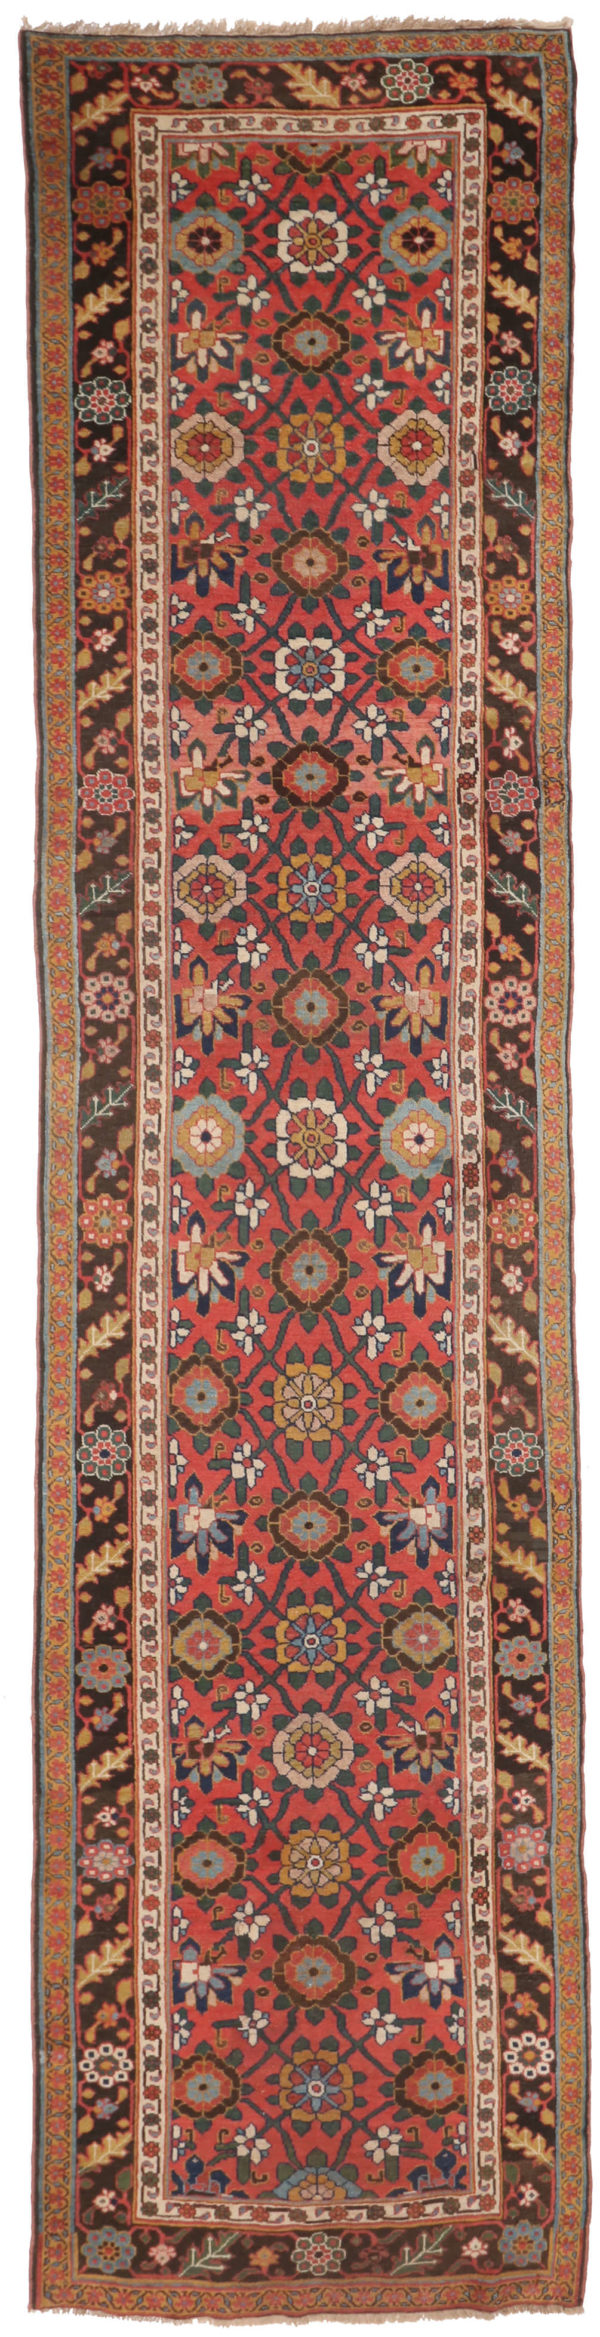 356137 Bidjar Garous Circa 1910 Good Condition Size 466 X 109 Cm 1 600x2337